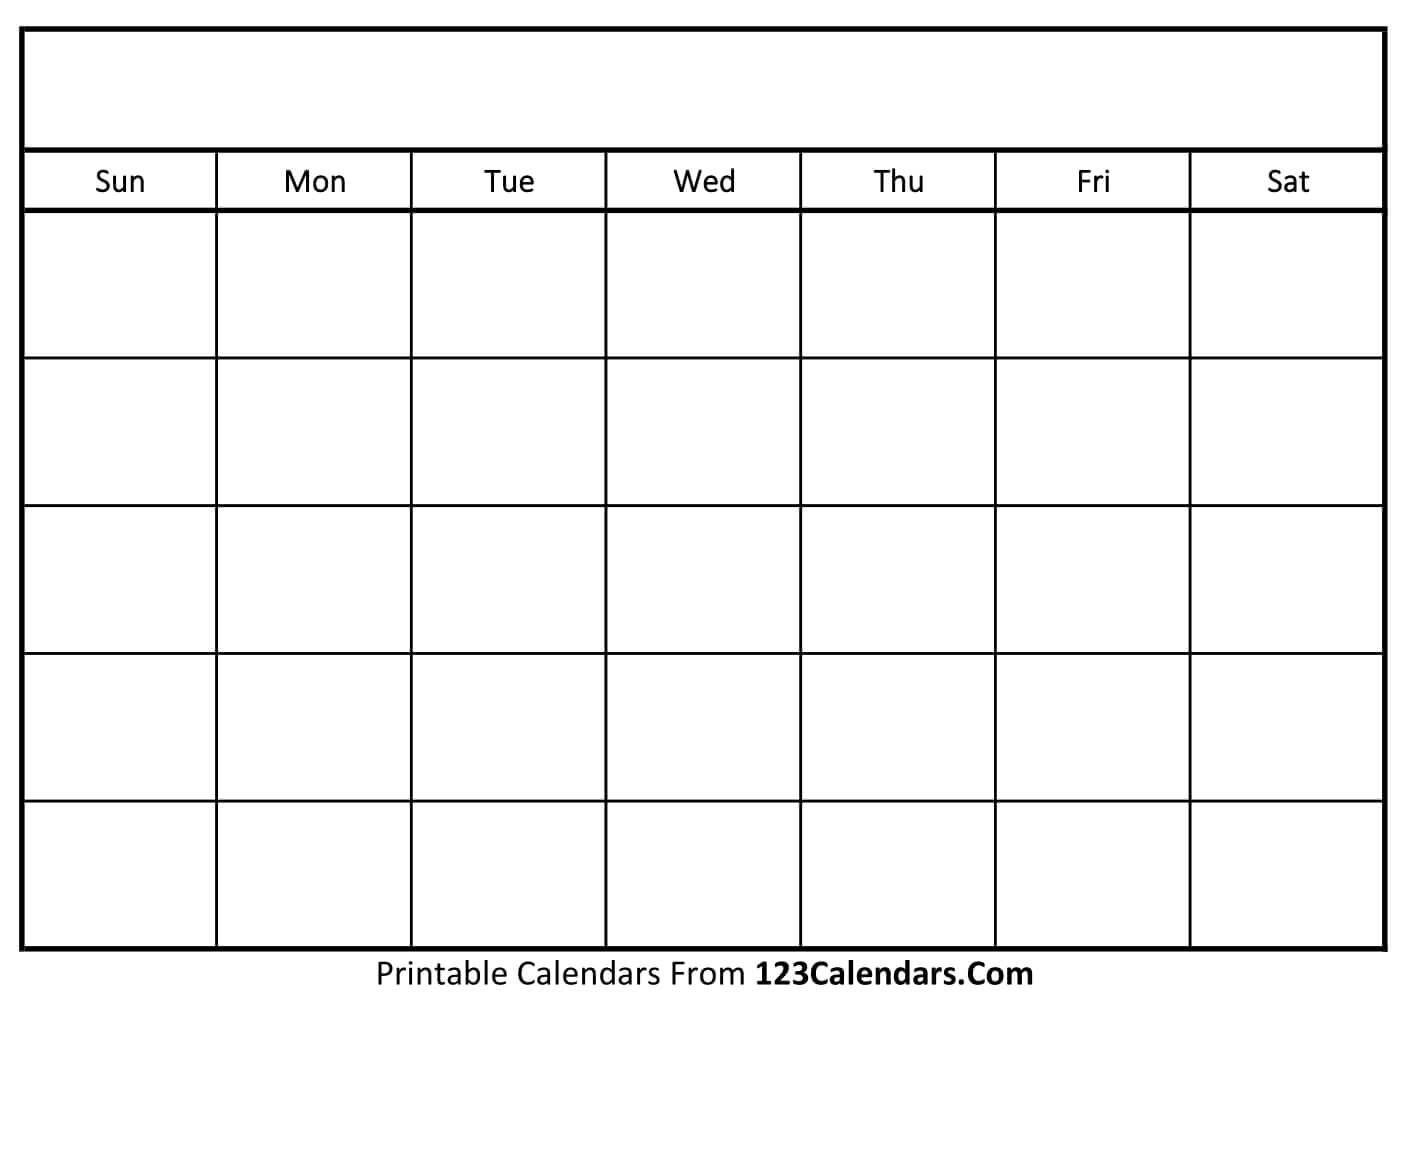 Free Printable Blank Calendar | 123Calendars pertaining to Blank Monthly Calender